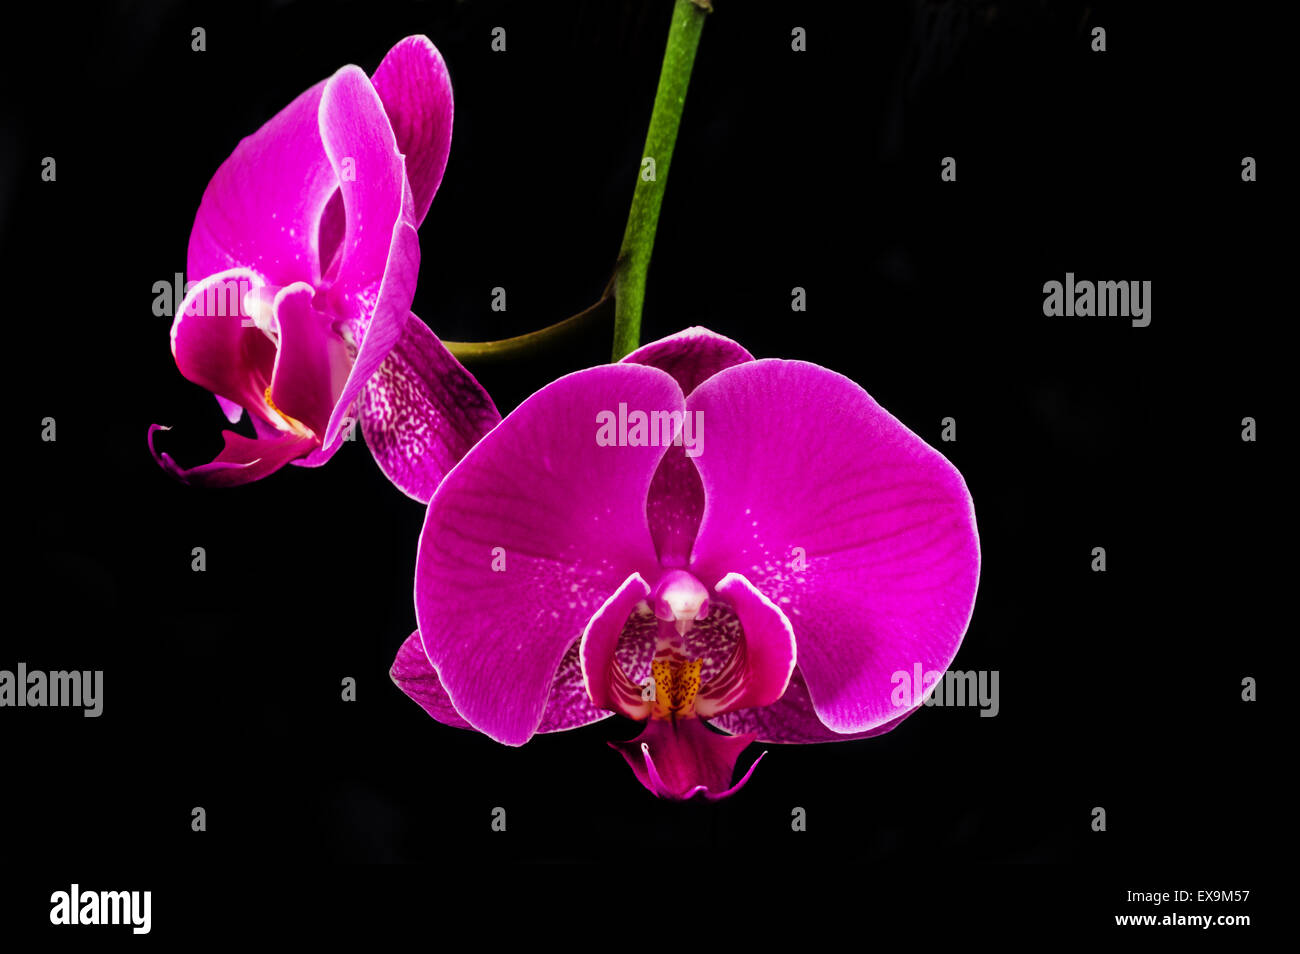 purple pink orchid flowers with black background - Stock Image